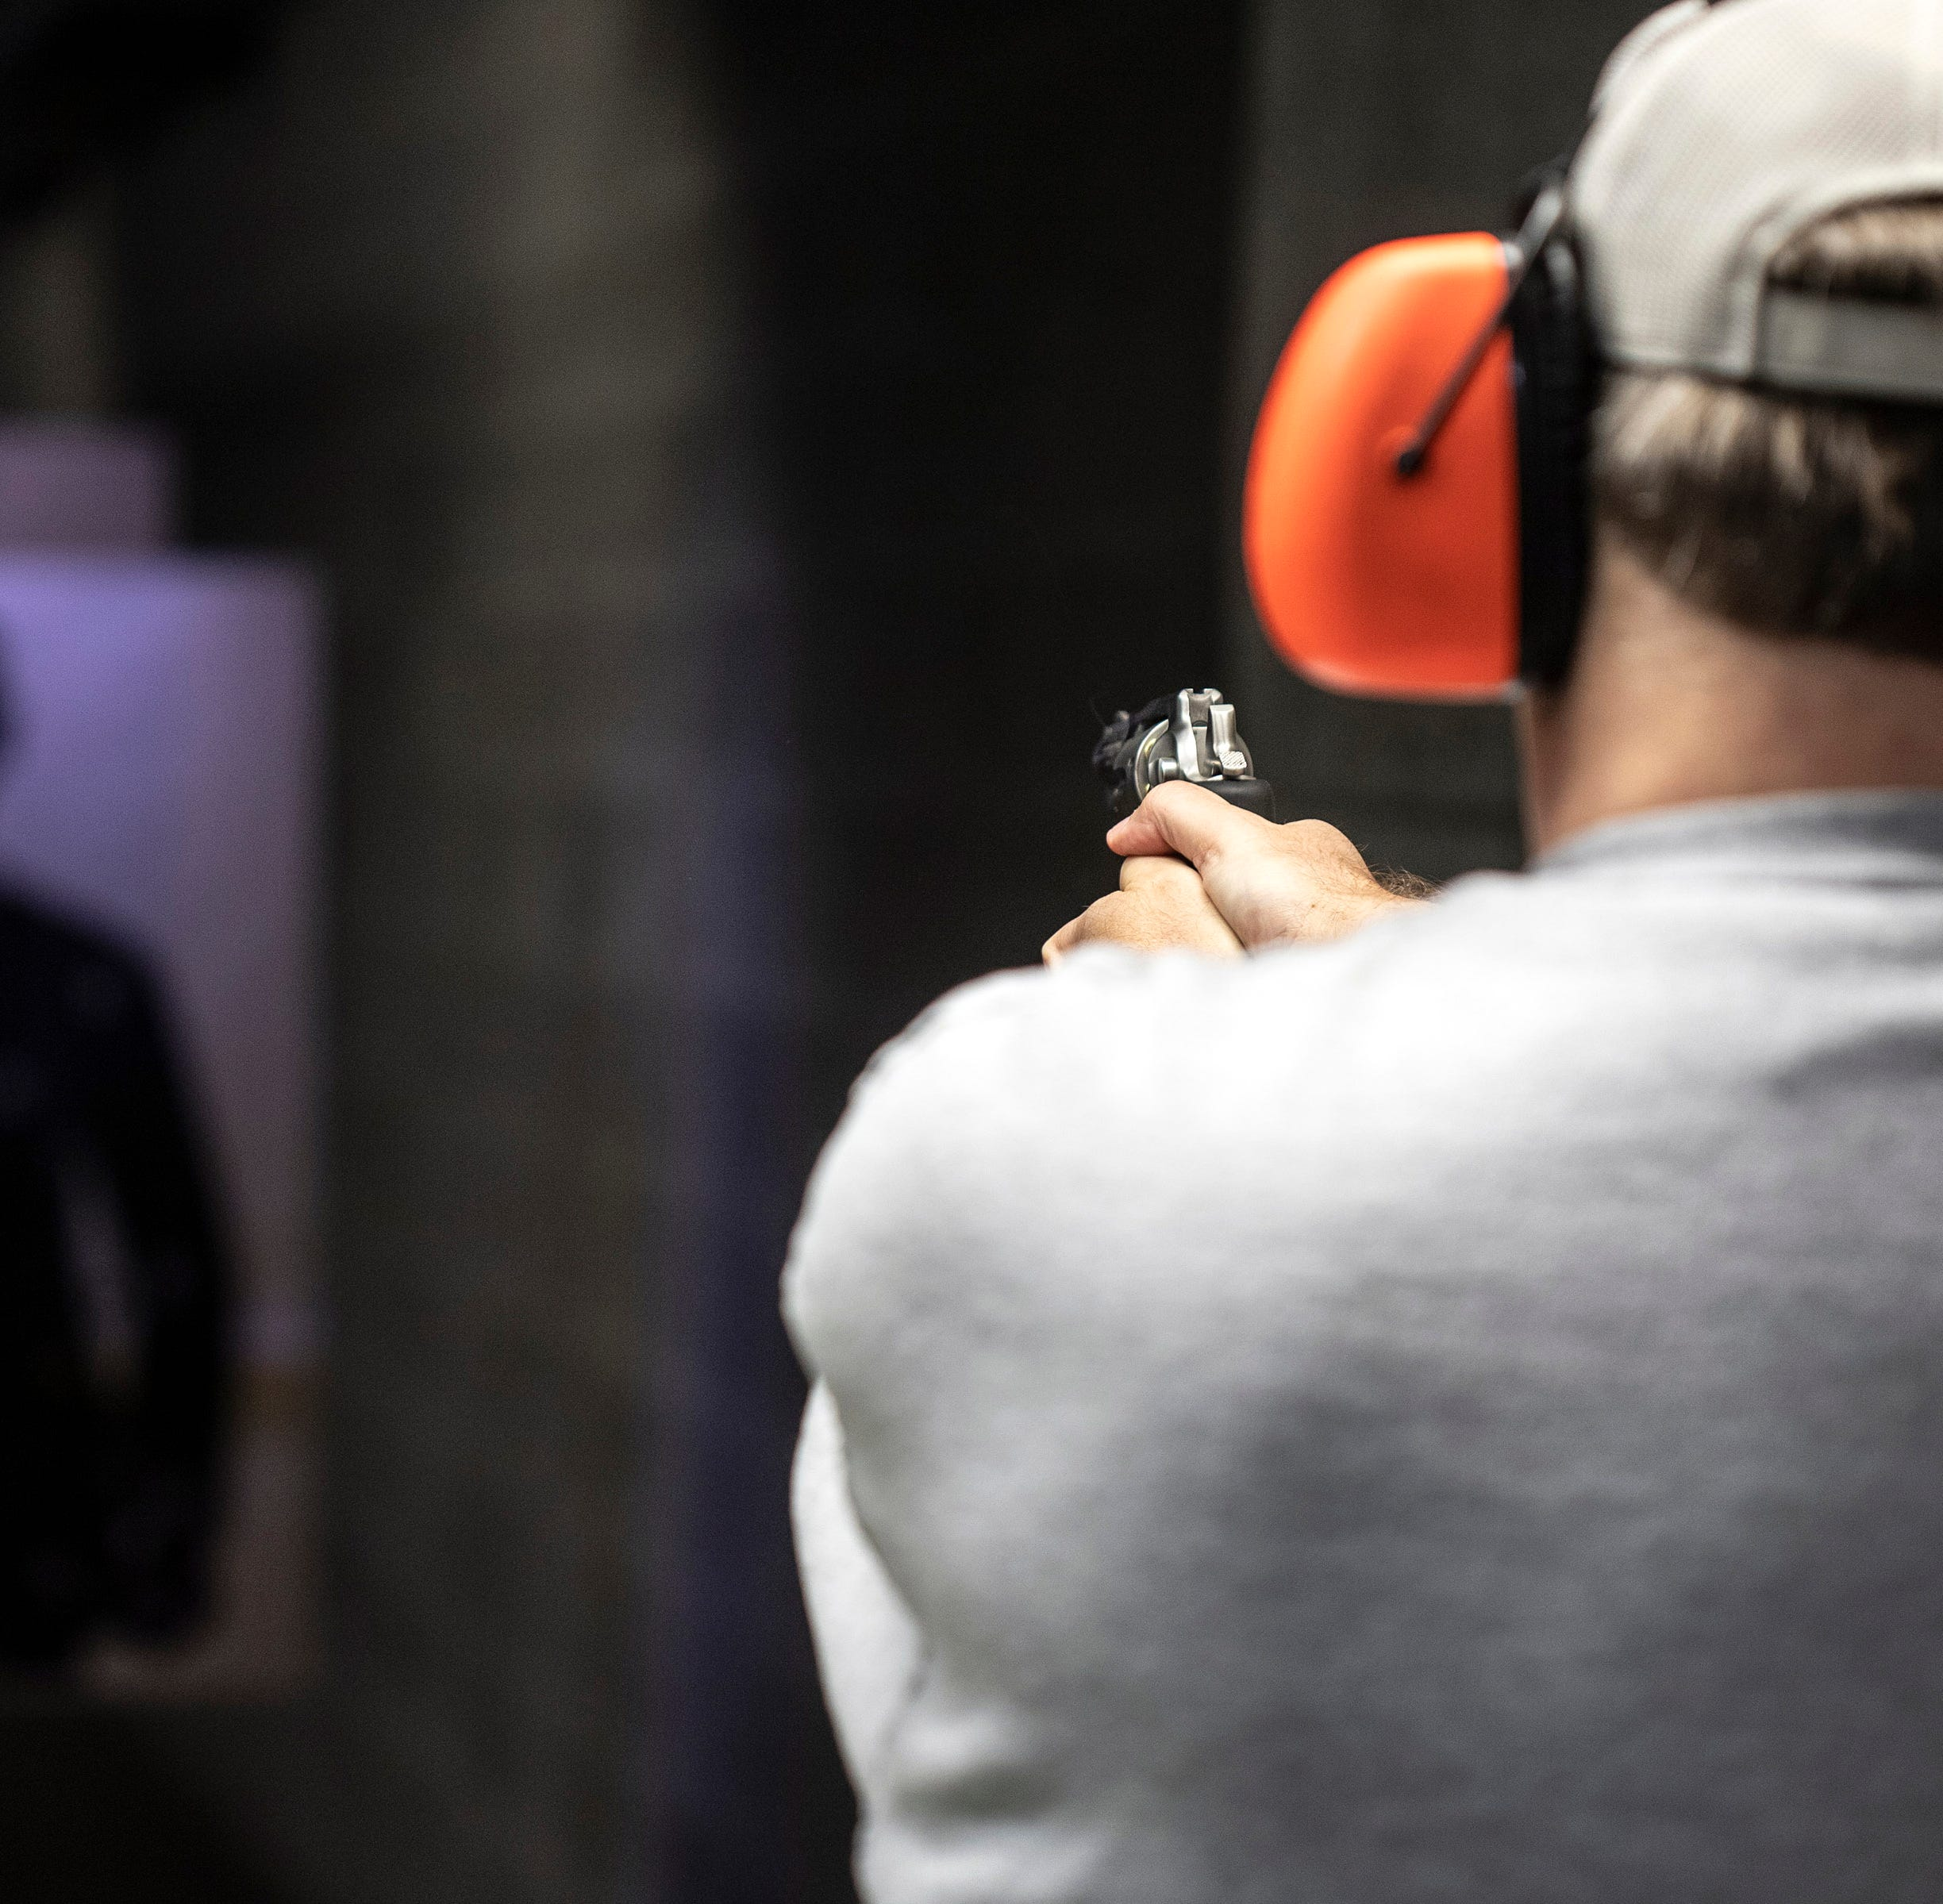 I have zero experience with a handgun. But Kentucky says I can carry a concealed weapon